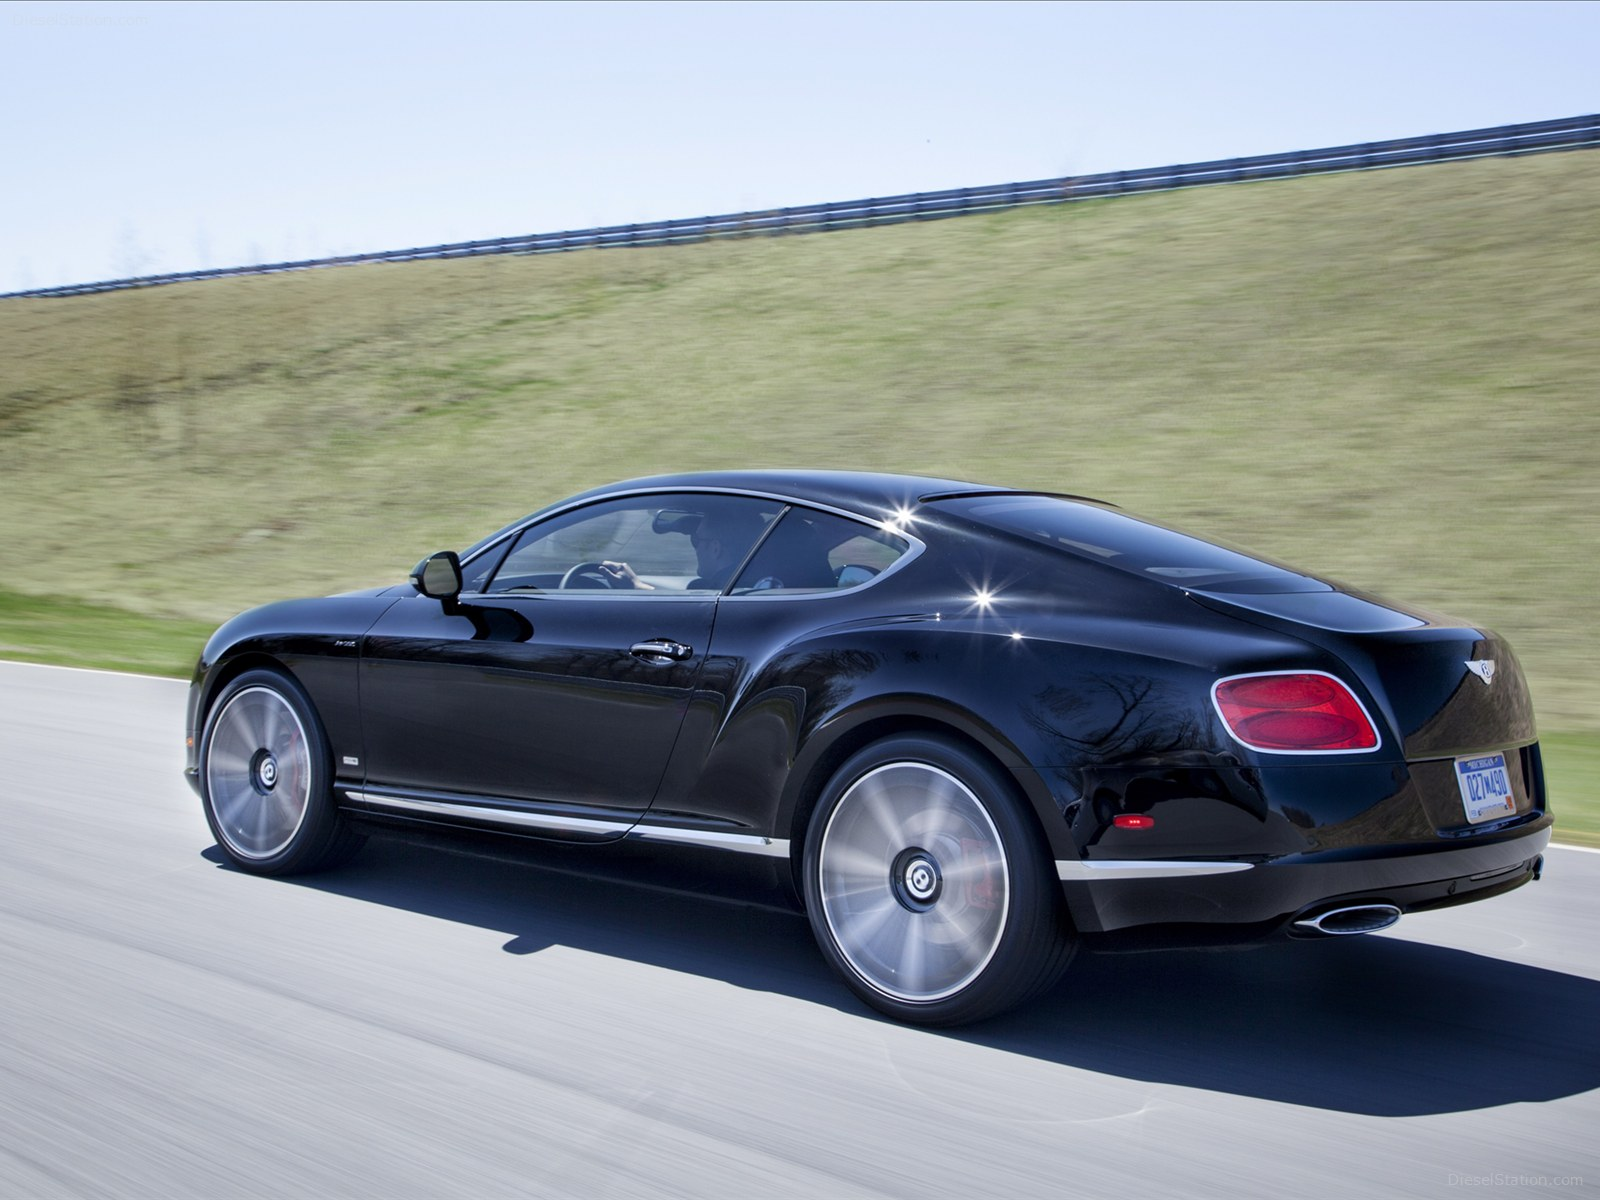 2019 Bentley Continental GT W12 Le Mans Edition photo - 5